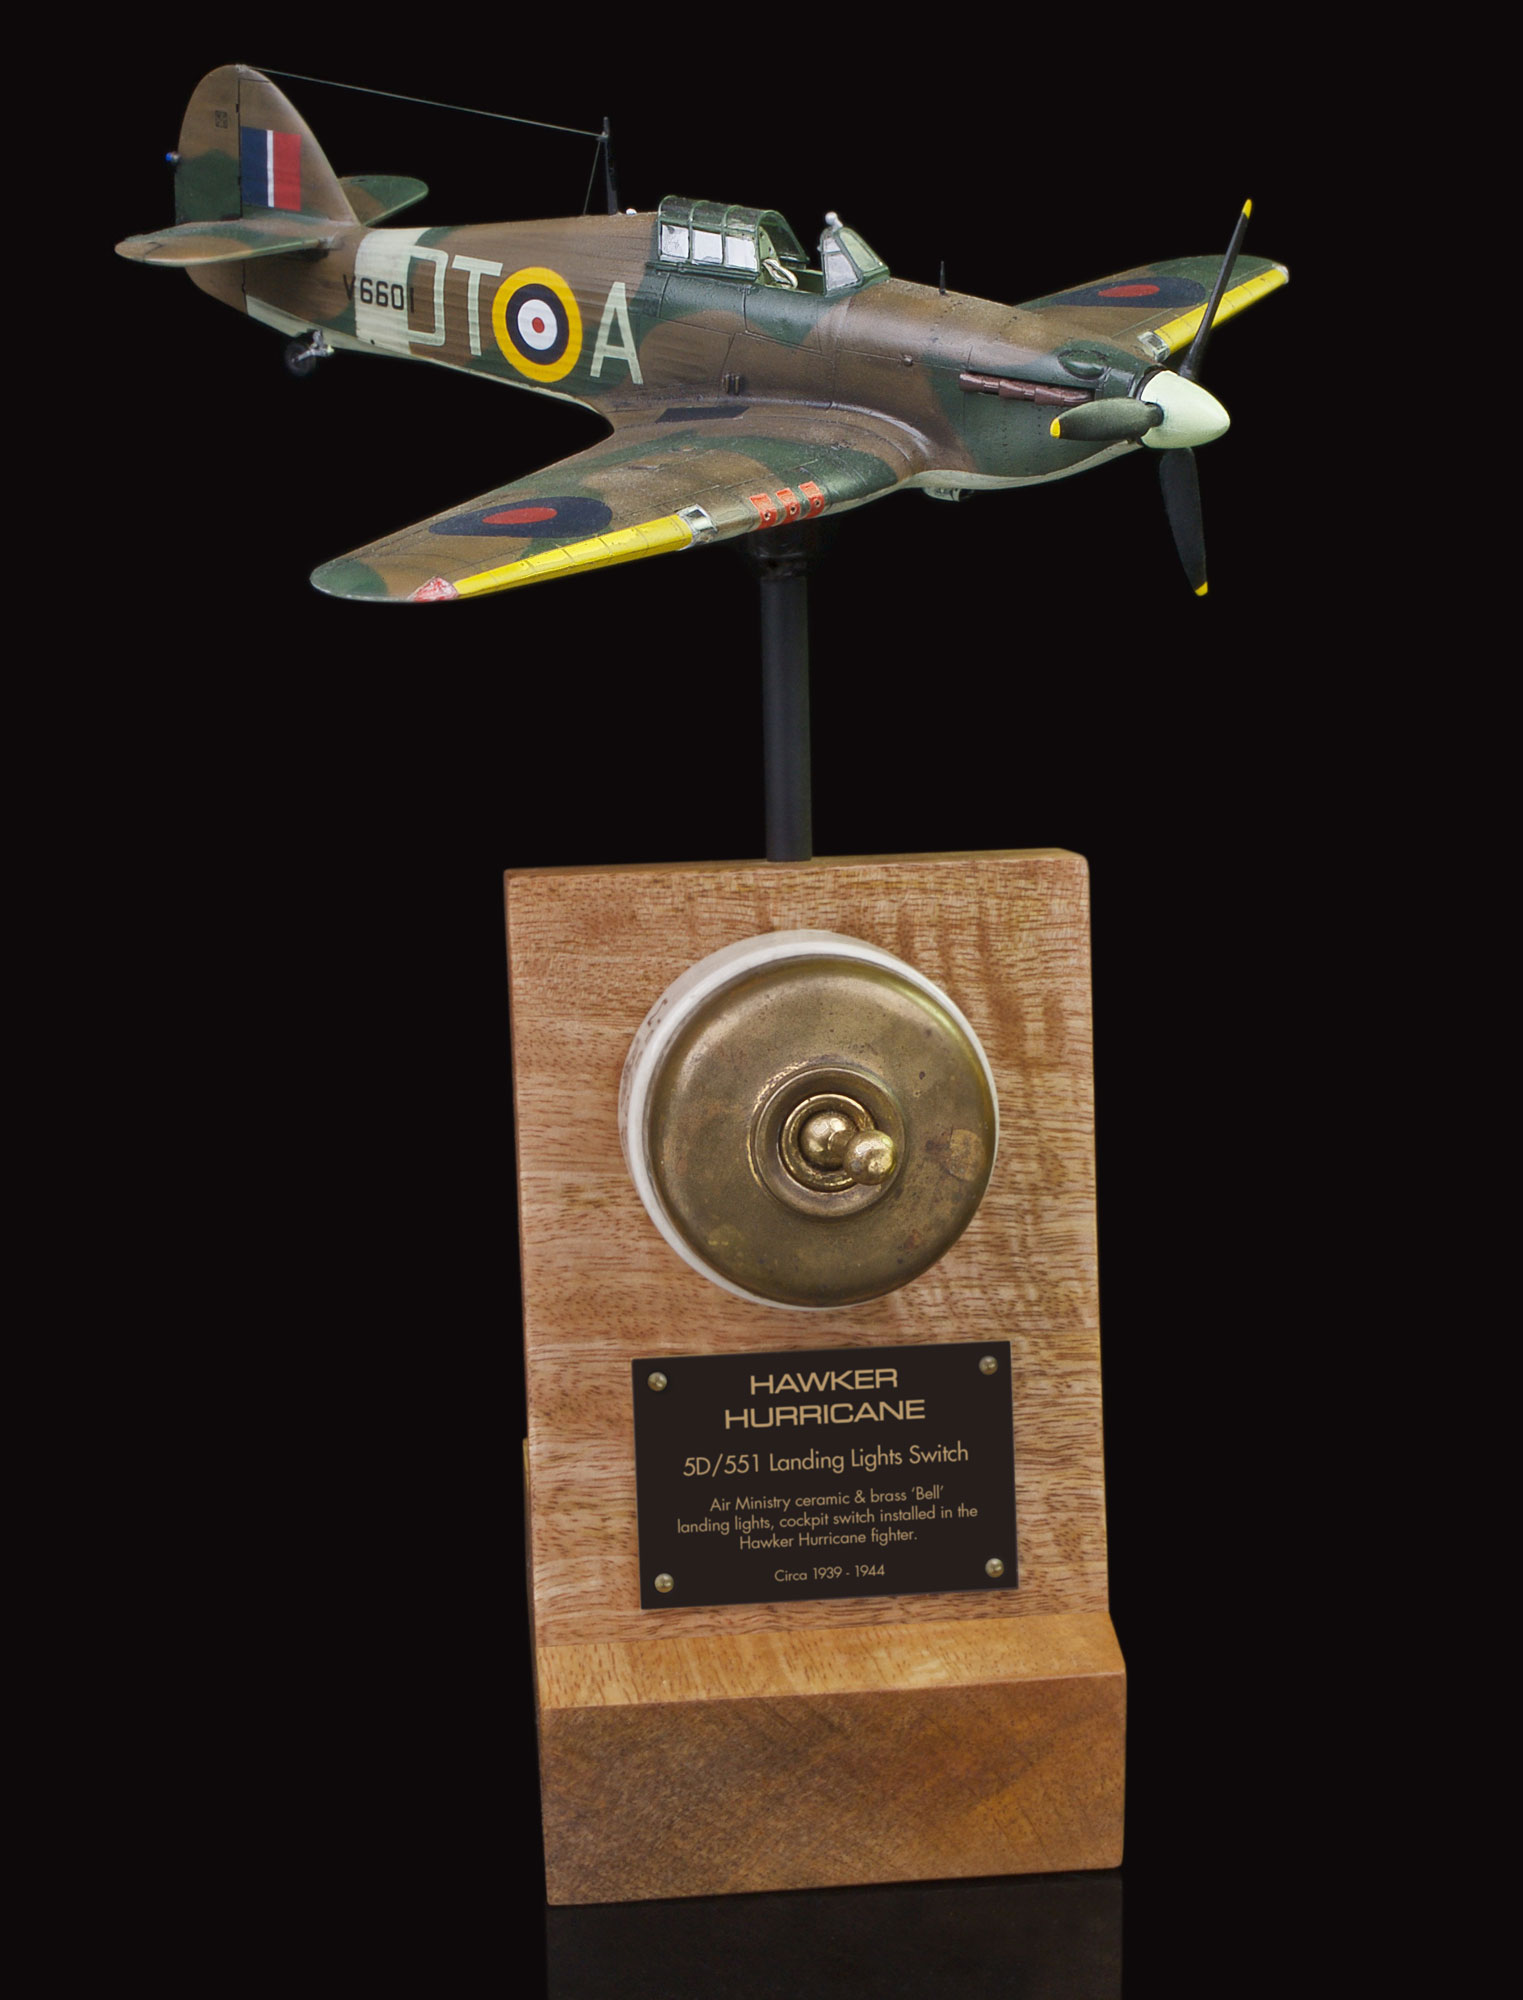 HAWKER HURRICANE 5D/551 'BELL' LANDING LIGHT, CERAMIC & BRASS TOGGLE SWITCH